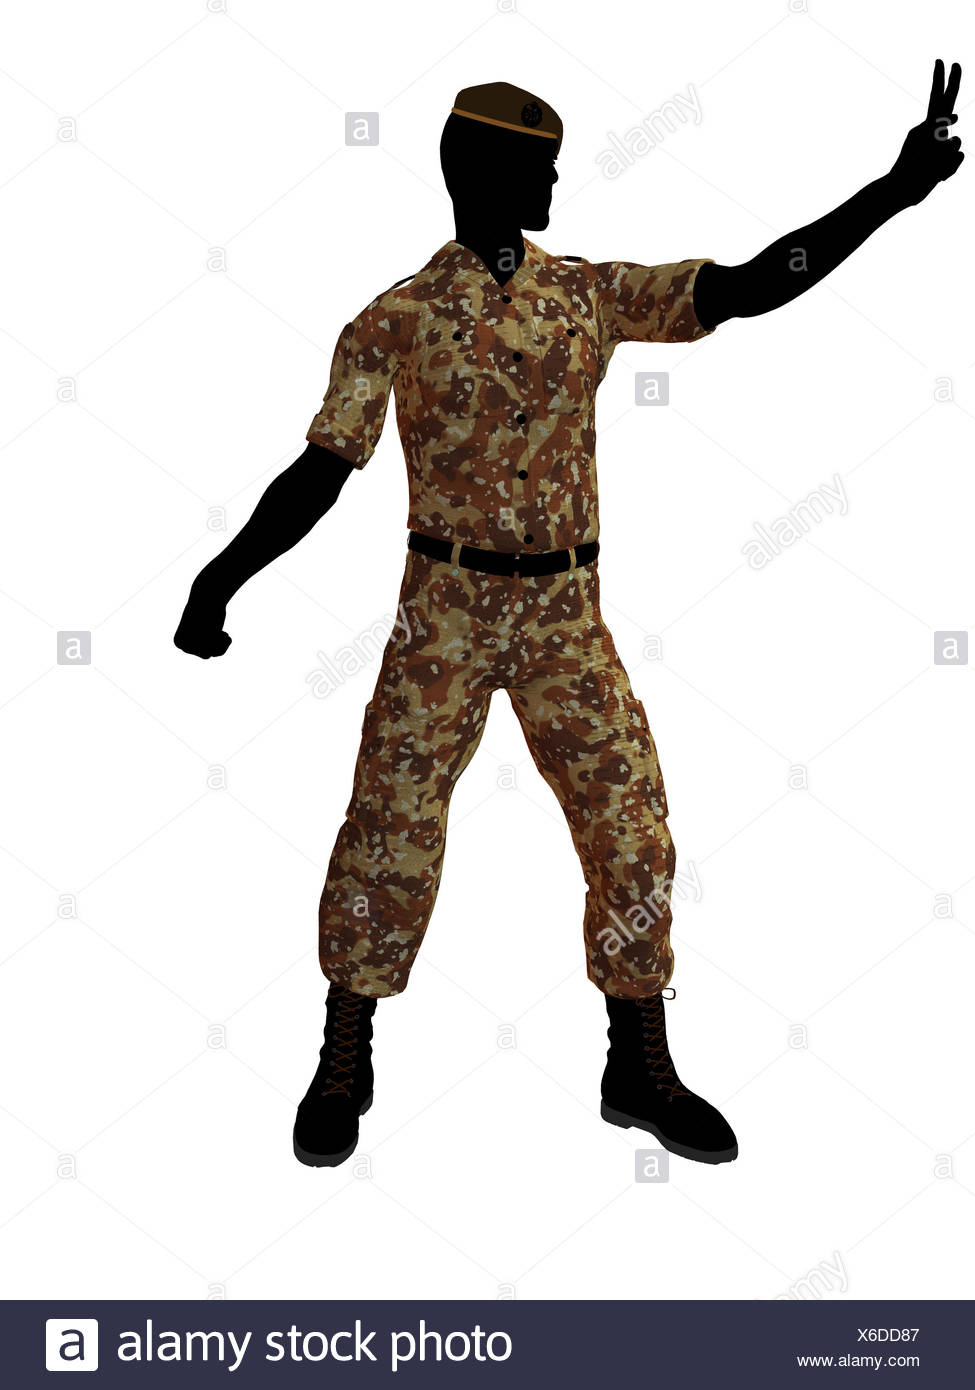 975x1390 Soldier Silhouette Beret Stock Photos Amp Soldier Silhouette Beret